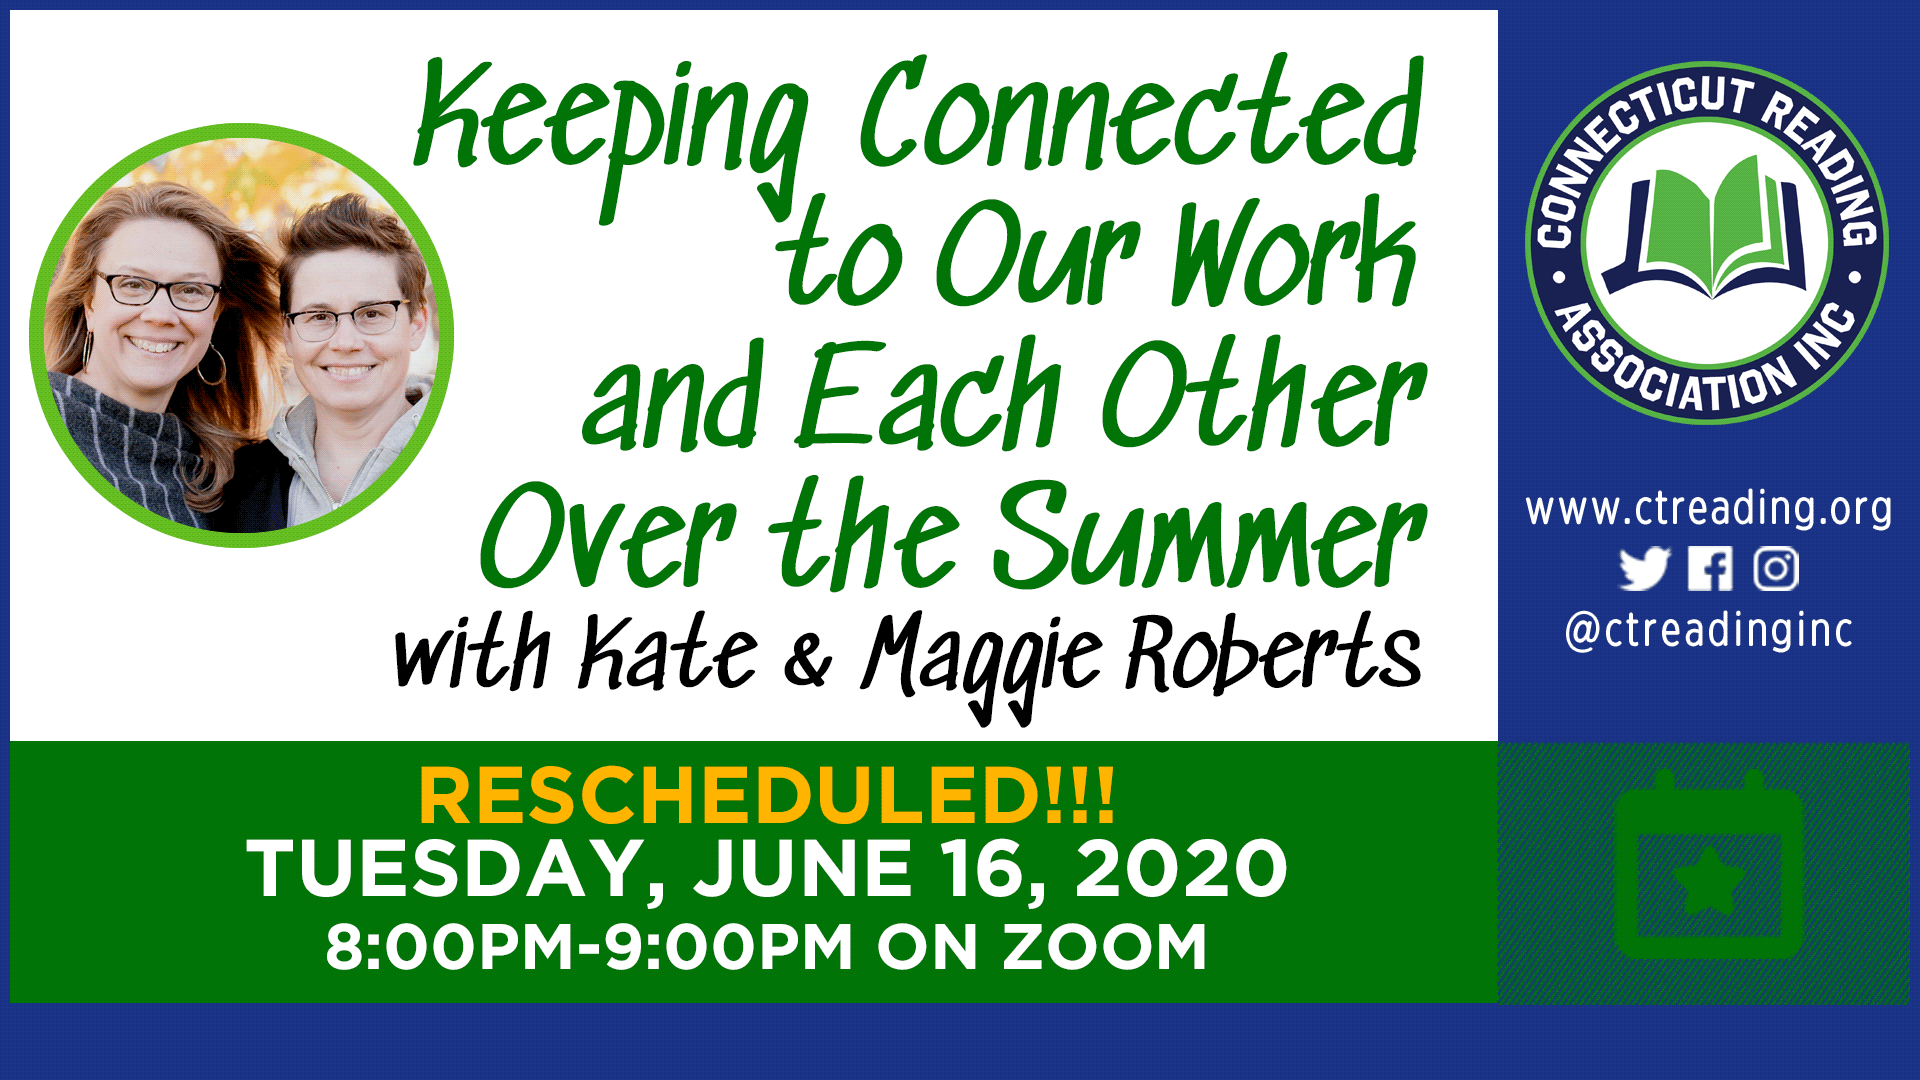 Keeping Connected to Our Work and Each Other Over the Summer with Kate & Maggie Roberts – on ZOOM!